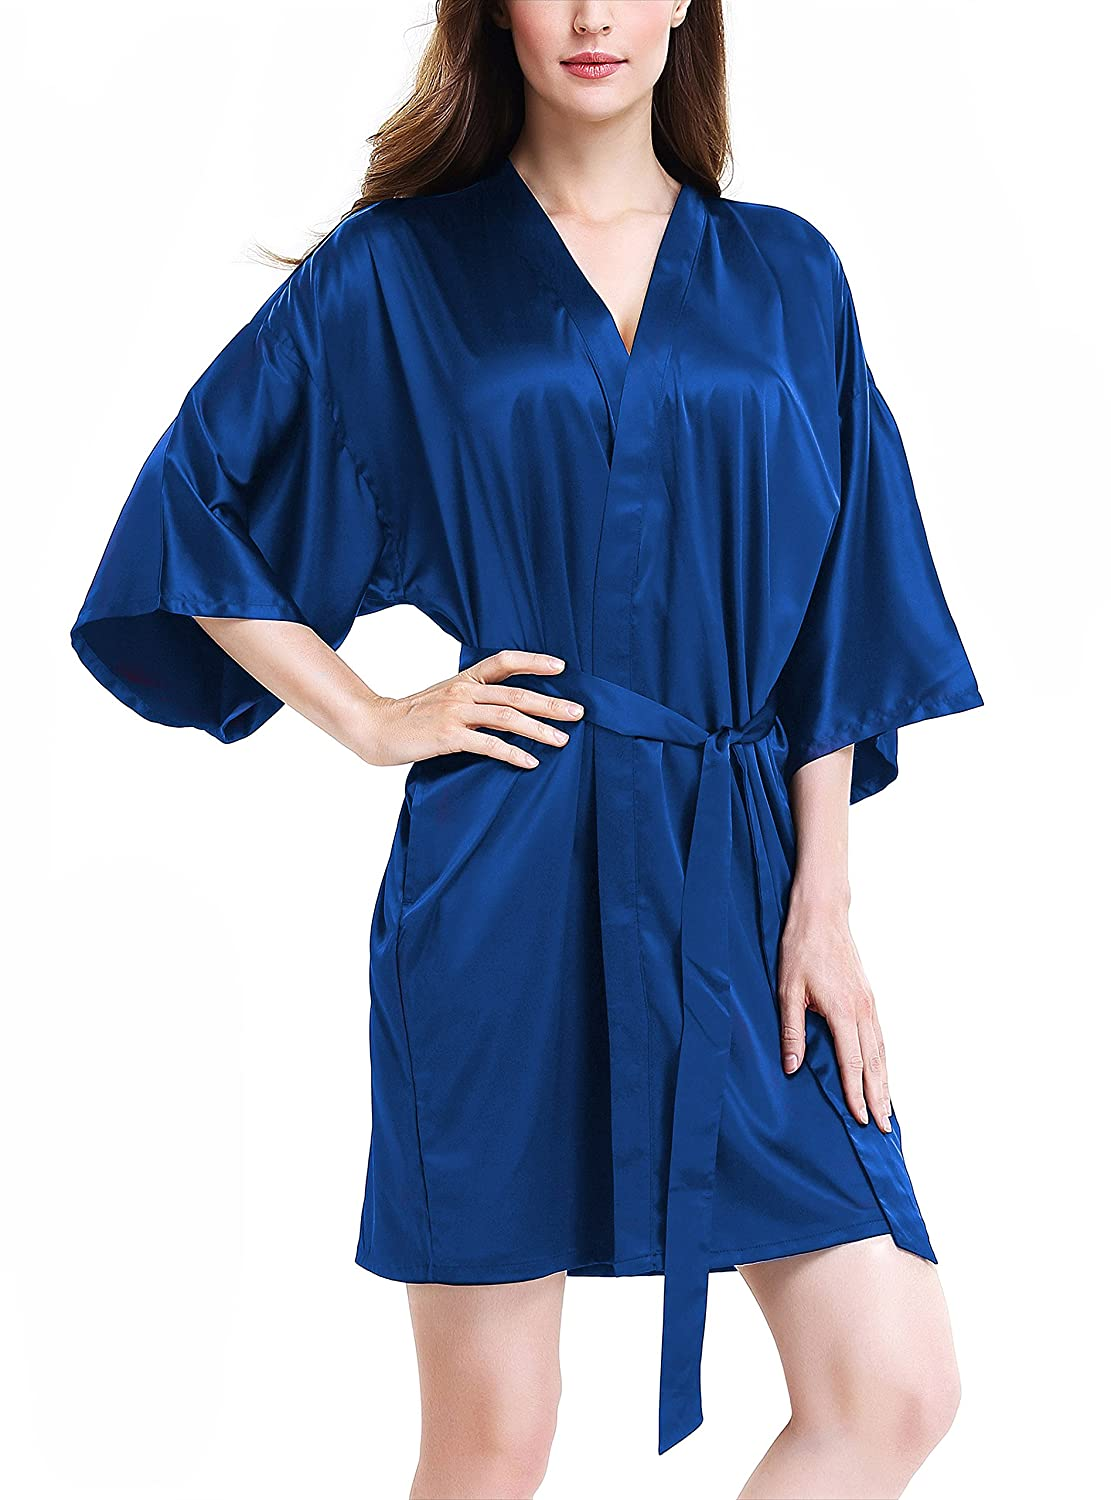 Sapphire Genuwin Womens Silk Robe Kimono Robe Bridesmaid Satin Robe Knee Length Women Robes SXL